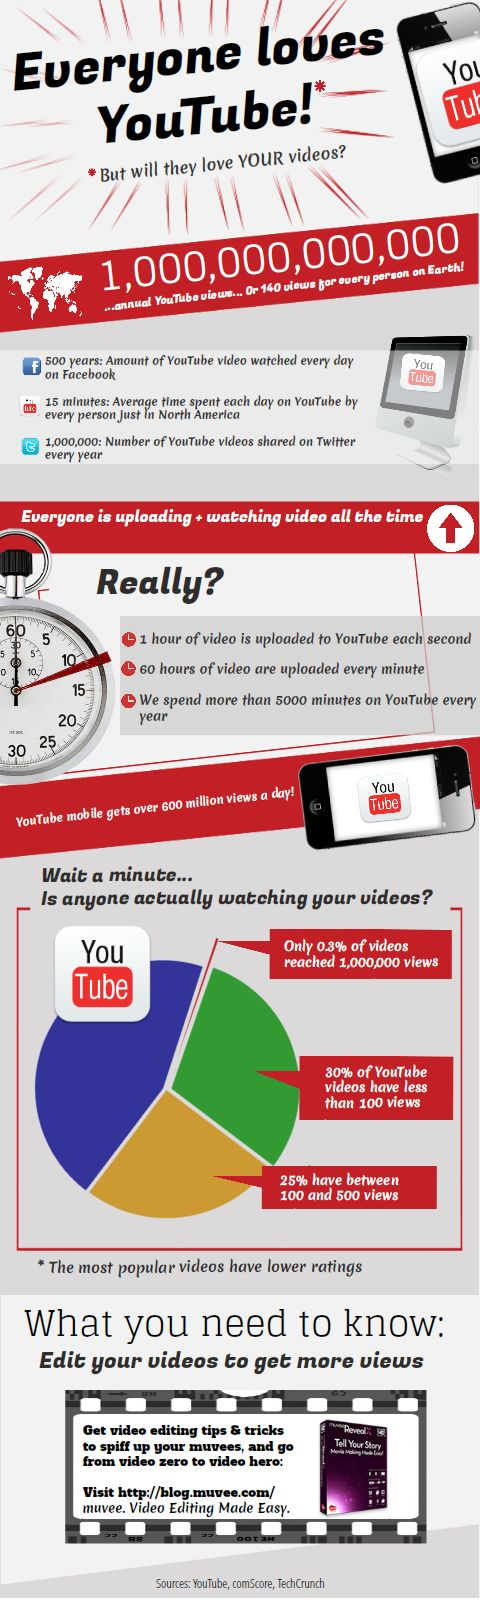 muvee video editing software infographic